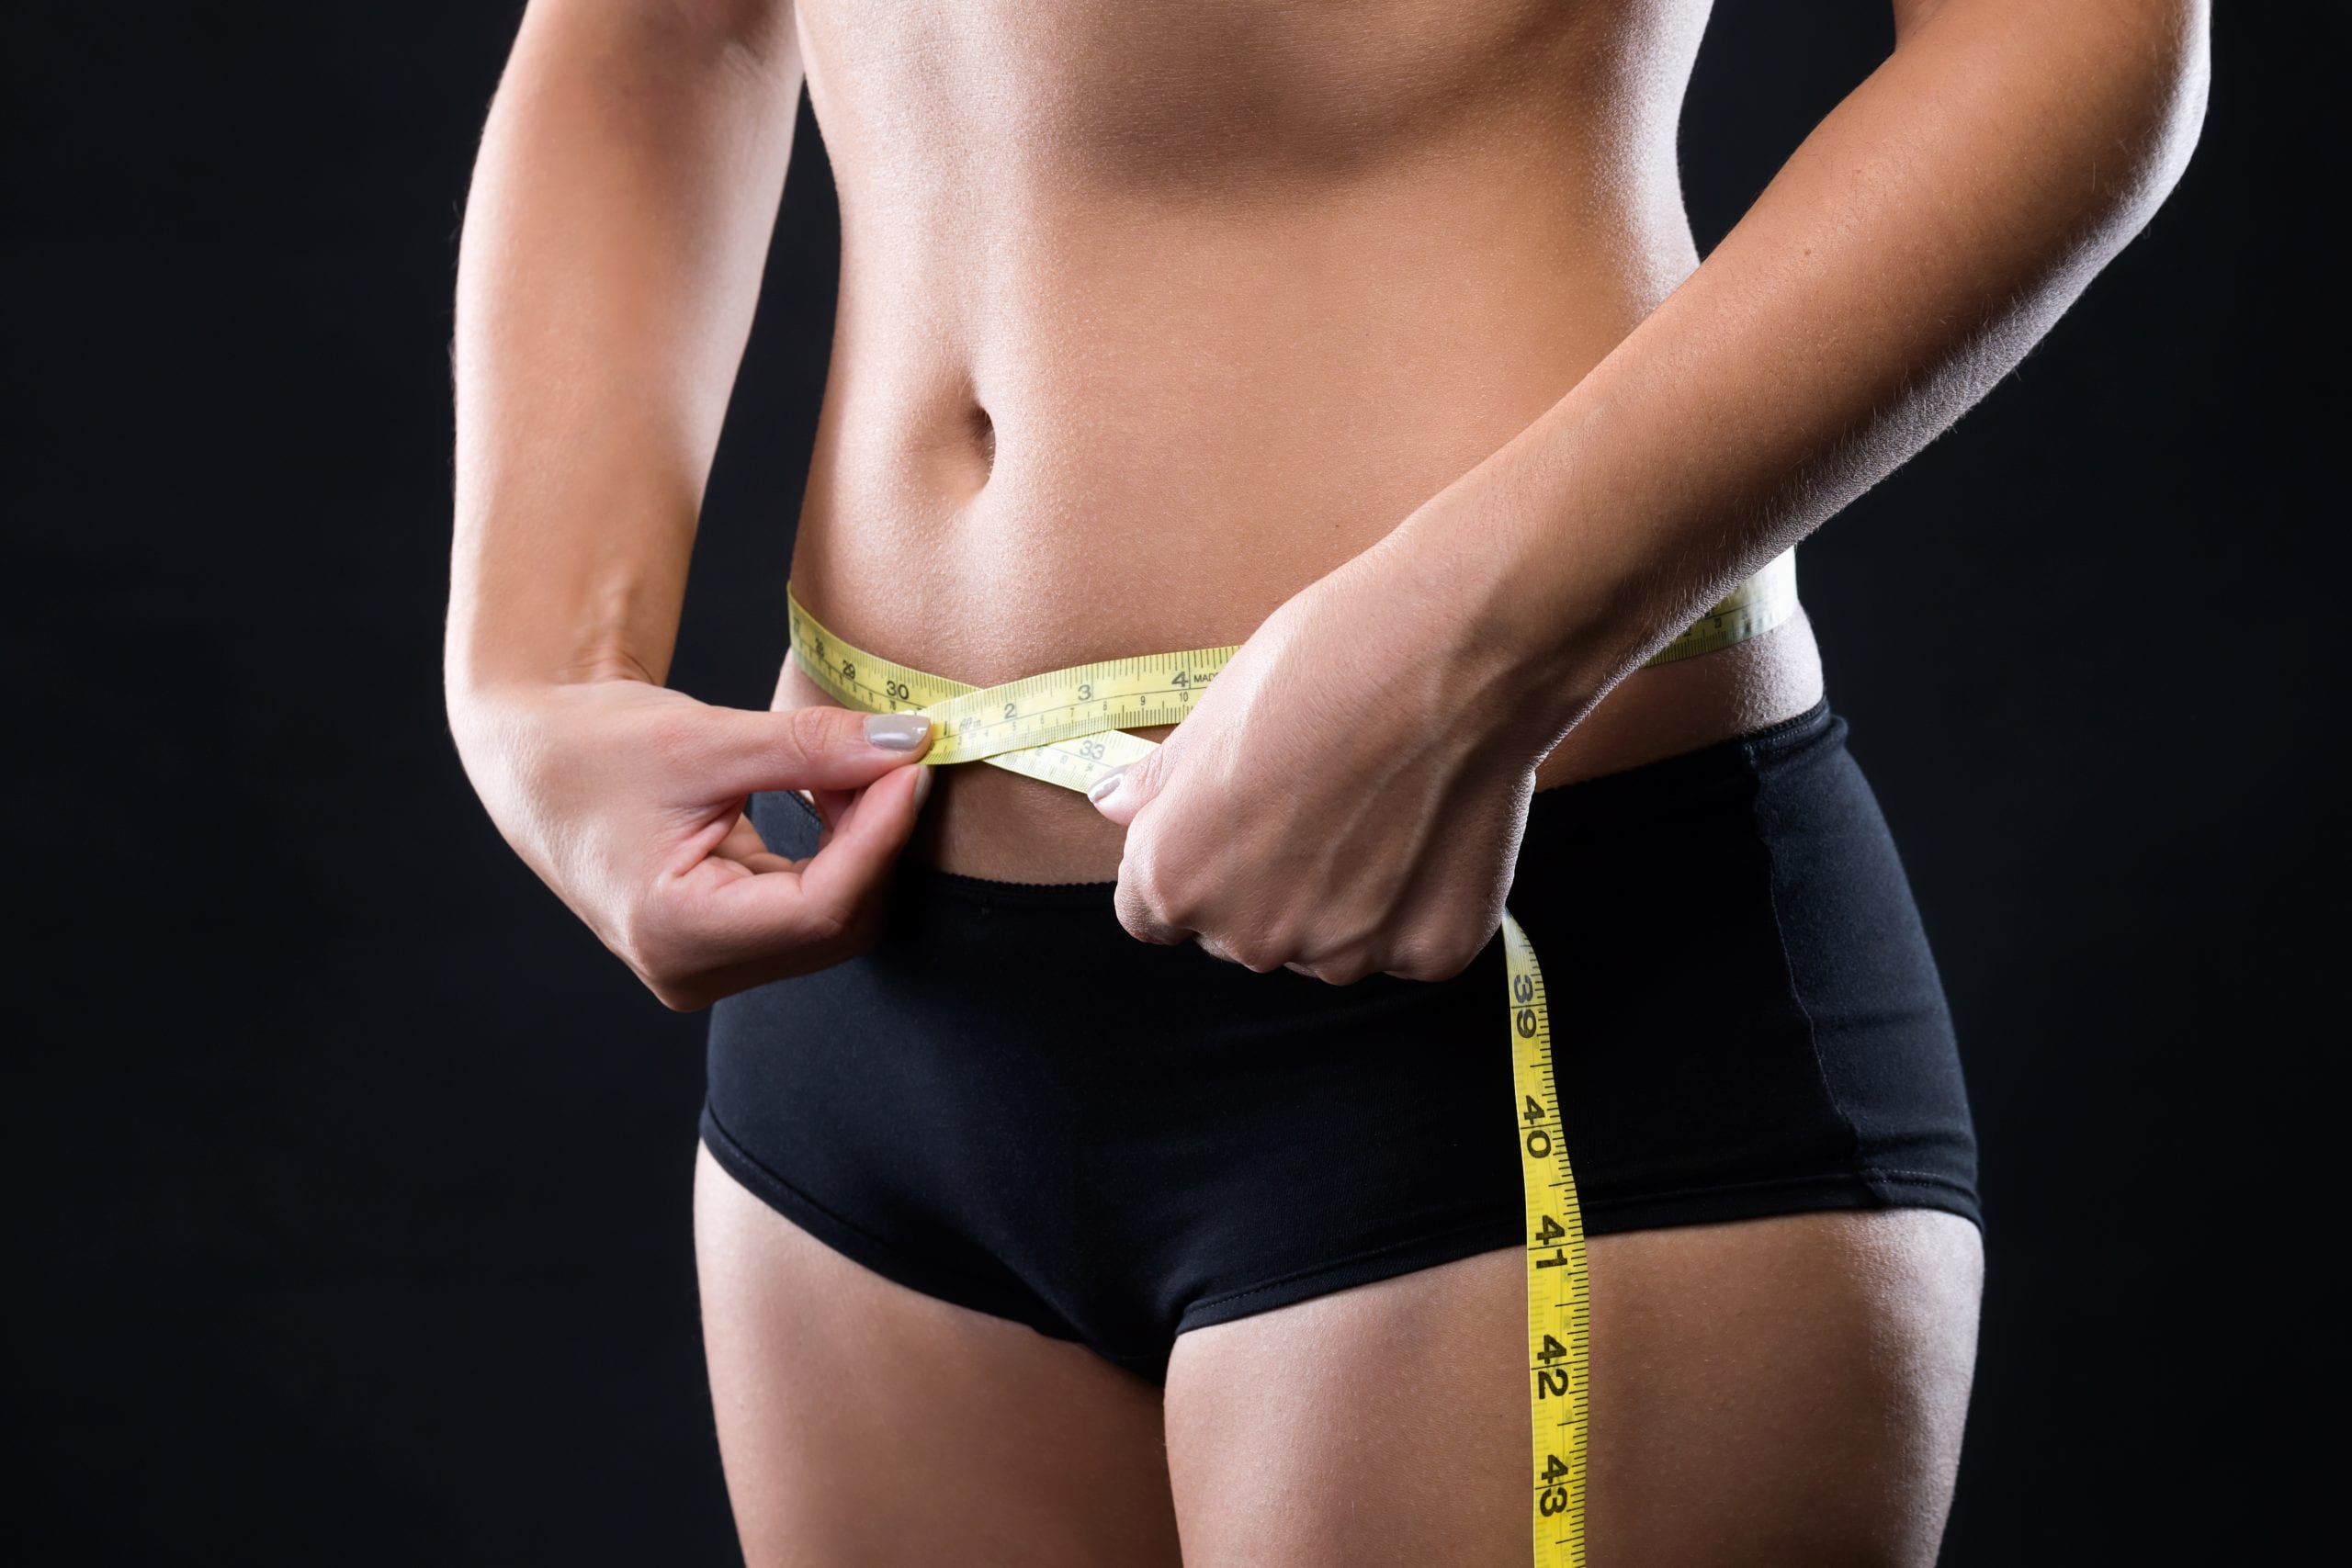 3 Common Questions Plastic Surgeons Ask for Body Sculpting